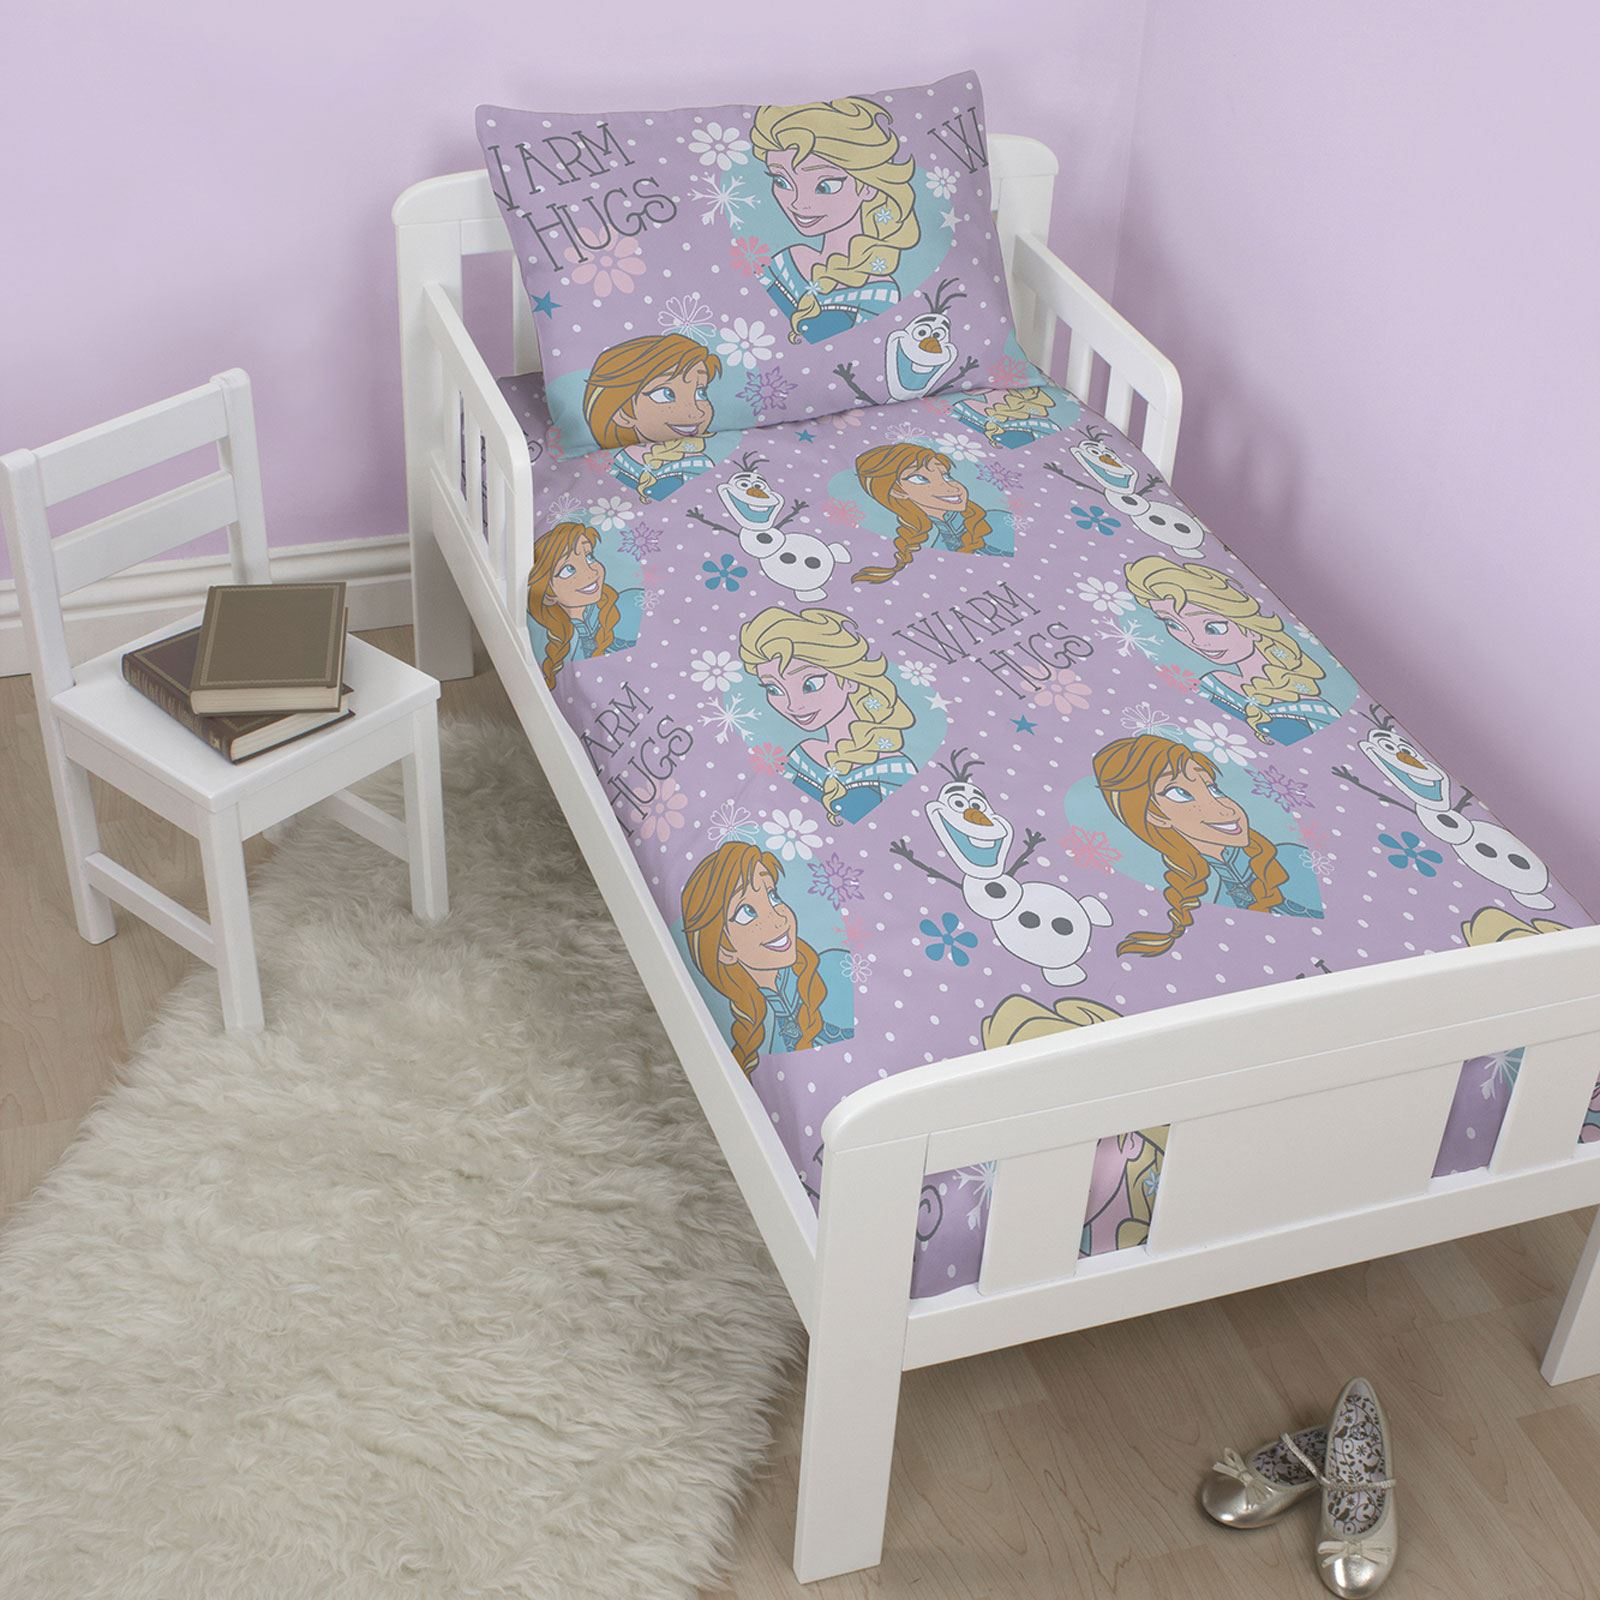 JUNIOR TODDLER BED BEDDING BUNDLES 4 IN 1